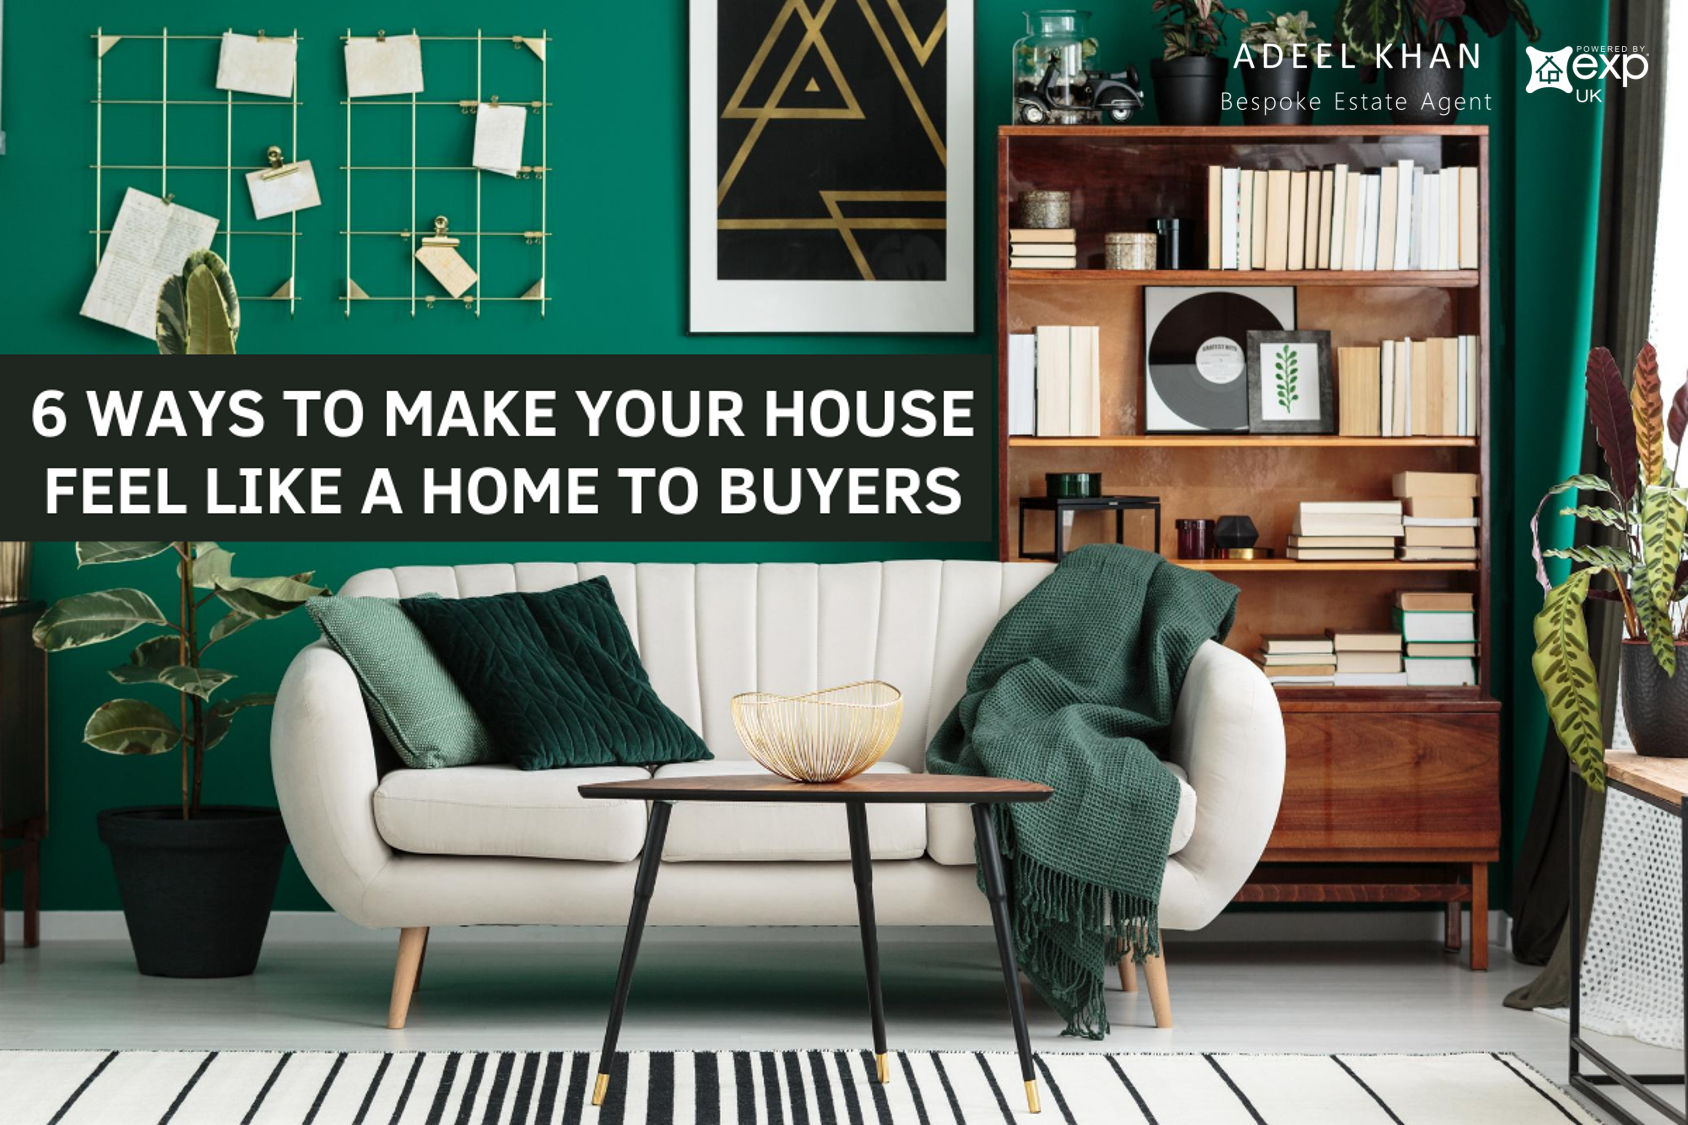 6 Ways to Make Your House Feel Like a Home to Buyers!